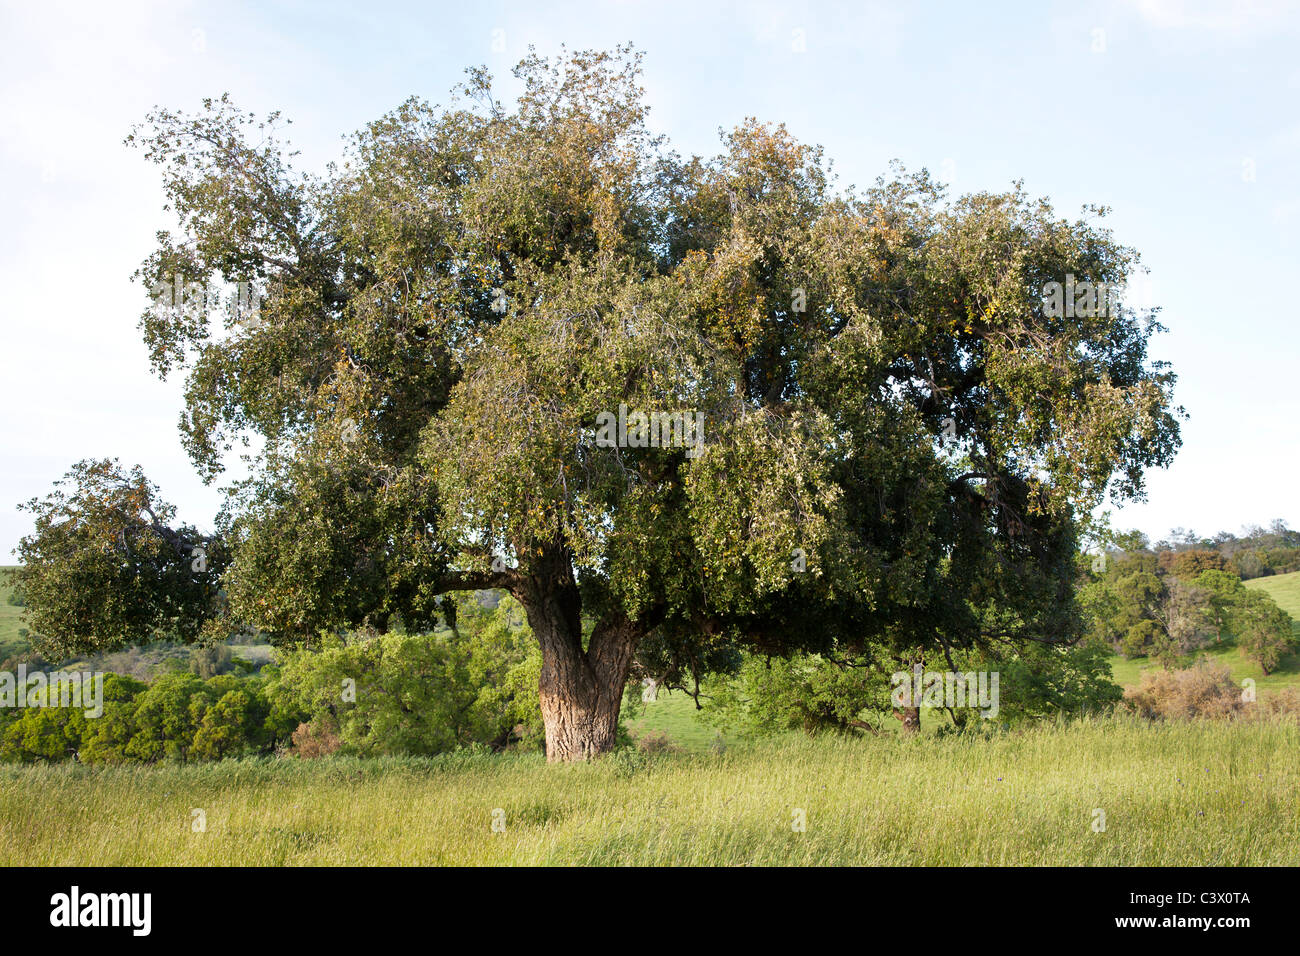 Cork Oak tree, springtime - Stock Image